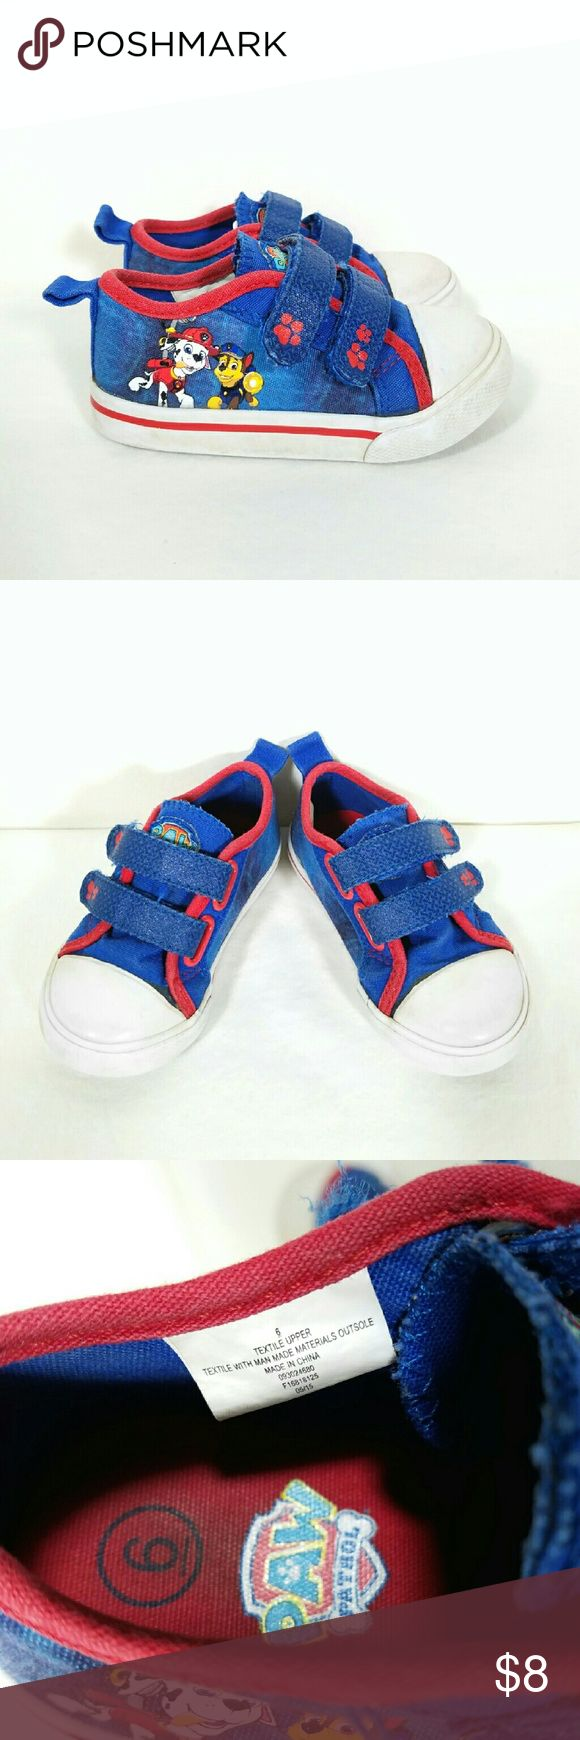 Paw Patrol velcro toddler sneakers * Prices are negotiable  :) * Bundle to save! Paw Patrol toddler canvas tennis shoes. Double velcro top closure. Round toe. Picture of Chase and Marshall on outer sides of shoes. - Brand: Nickelodeon  - Size Walker 6. These run about a half size small and best fit size 5-5.5. - Color: Blue with red trim. White soles.  - Textiles and man-made materials  - Good condition. Some wear to color from laundering. A little dirt in soles which can be scrubbed off…